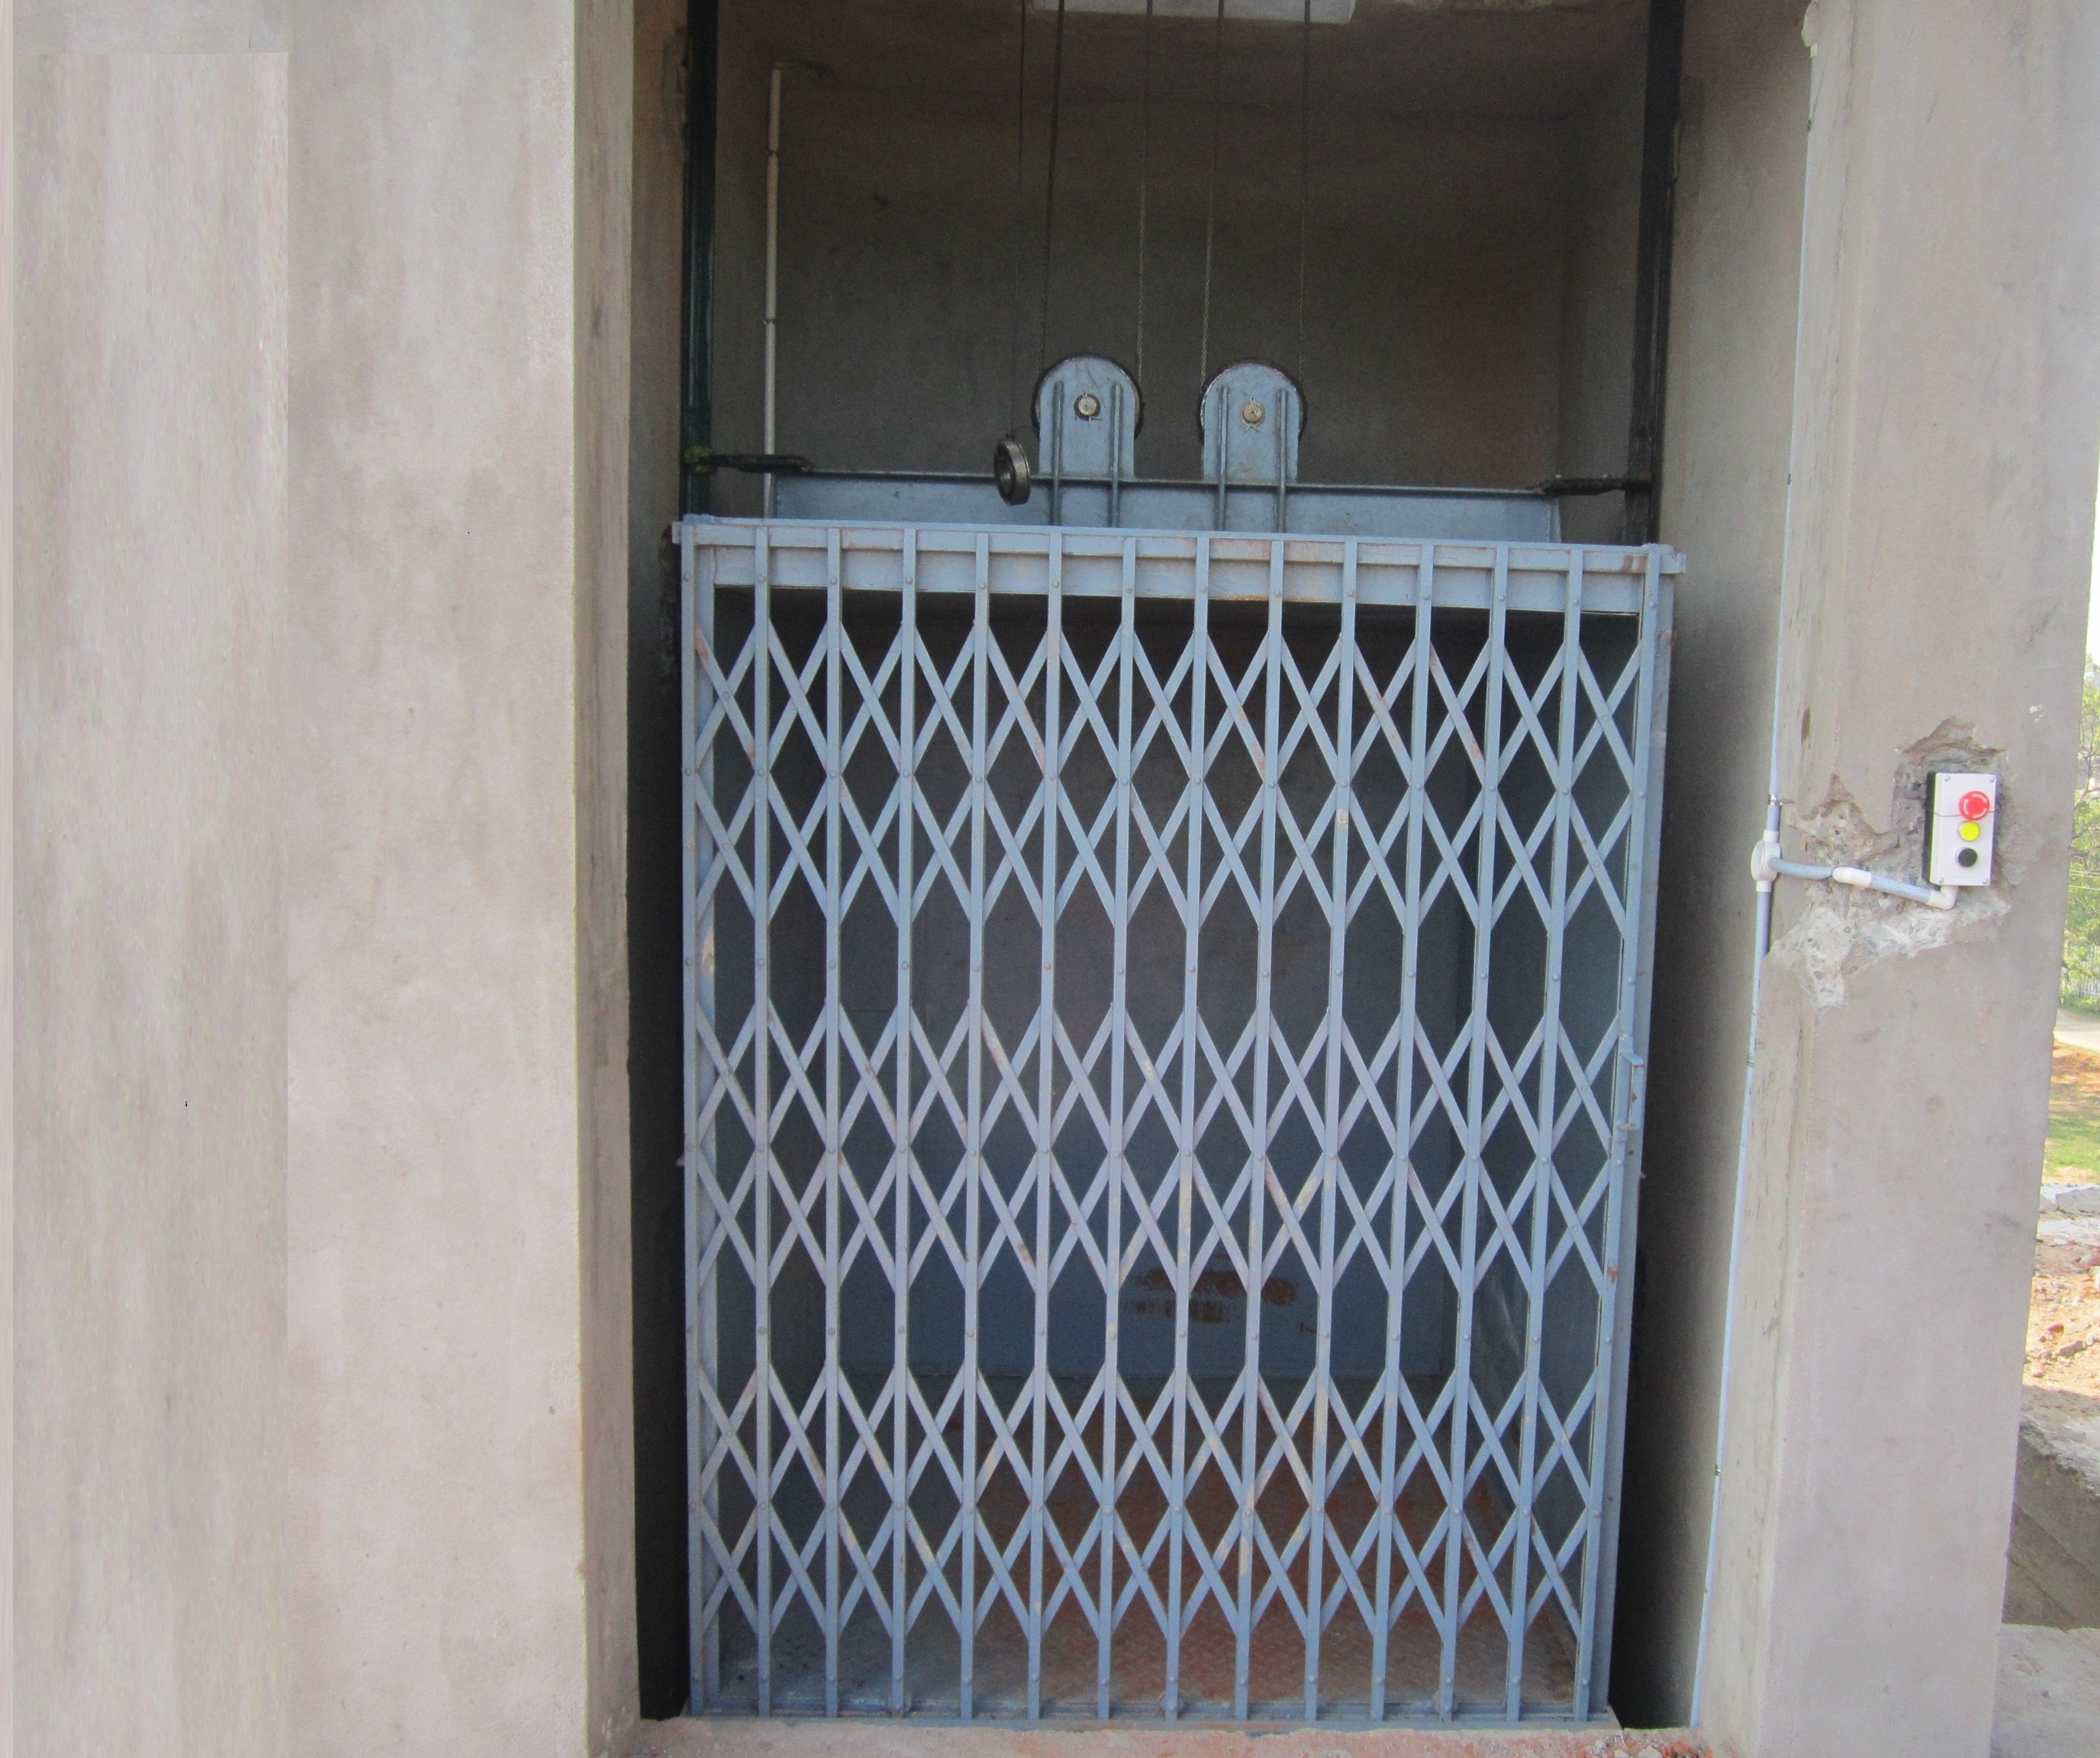 We are Manufacturer And Suppliers of Material Handling Lift In India. Manufacturer of Material  Lift In Tamilnadu Manufacturer of Material Handling Equipment In Kerala Lifting Equipment Manufacturer In Coimbatore  For More Info www.lightcrescent.com